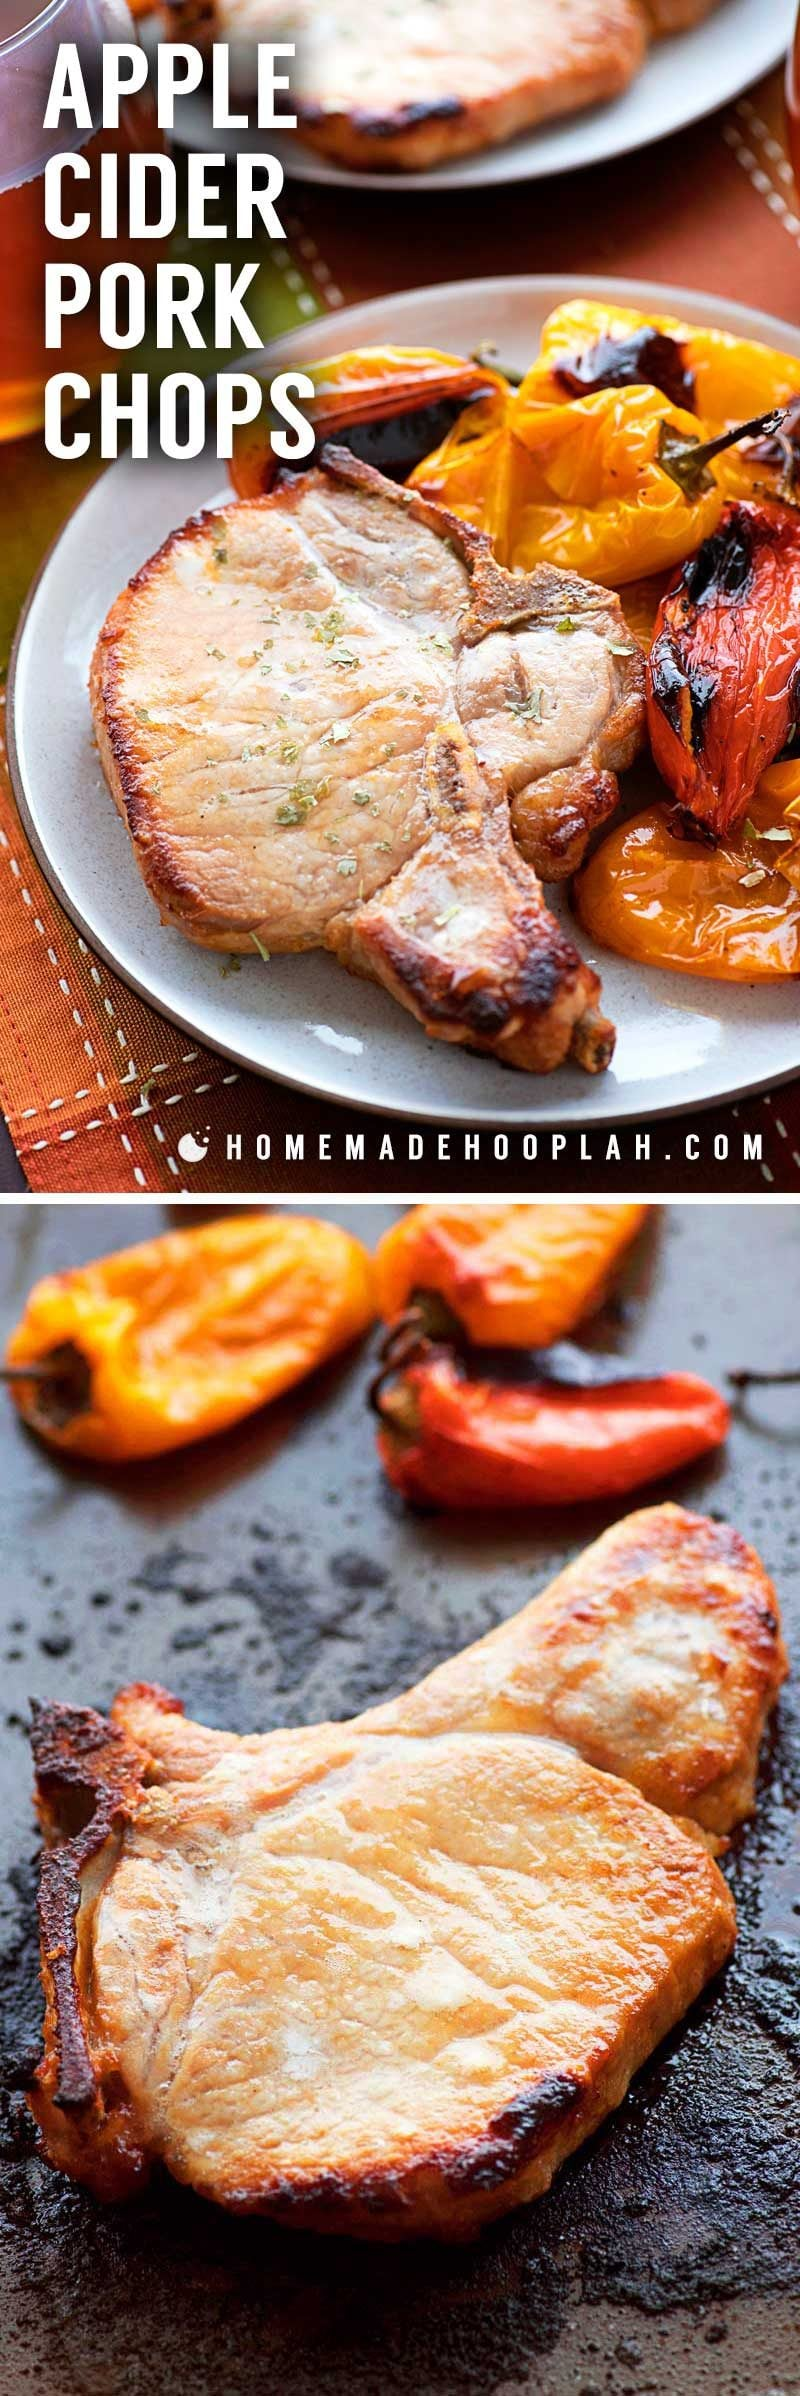 Apple Cider Pork Chops! Tender Smithfield Prime Bone In Thick Cut Pork Chops soaked in an apple cider brine and baked to tender perfection. Perfect for holiday cooking! #ad | HomemadeHooplah.com